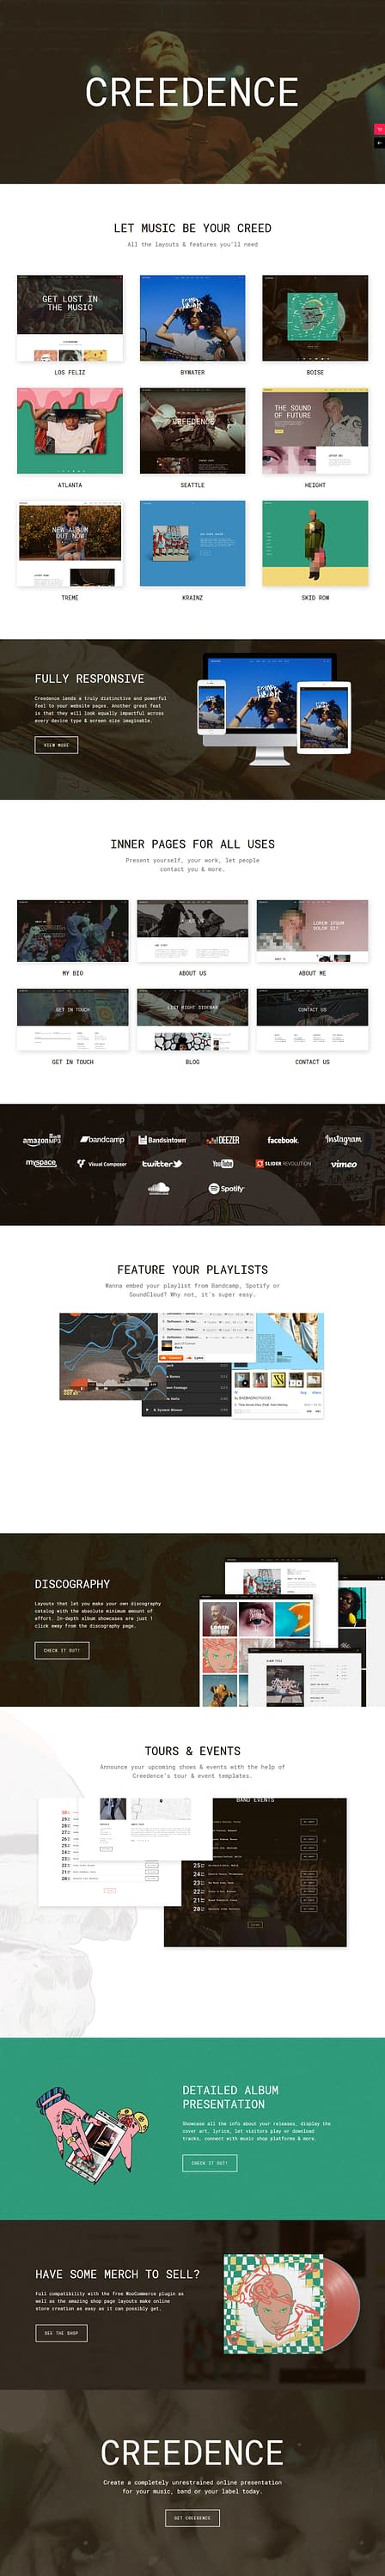 Creedence - Best Premium Video and Music WordPress Theme